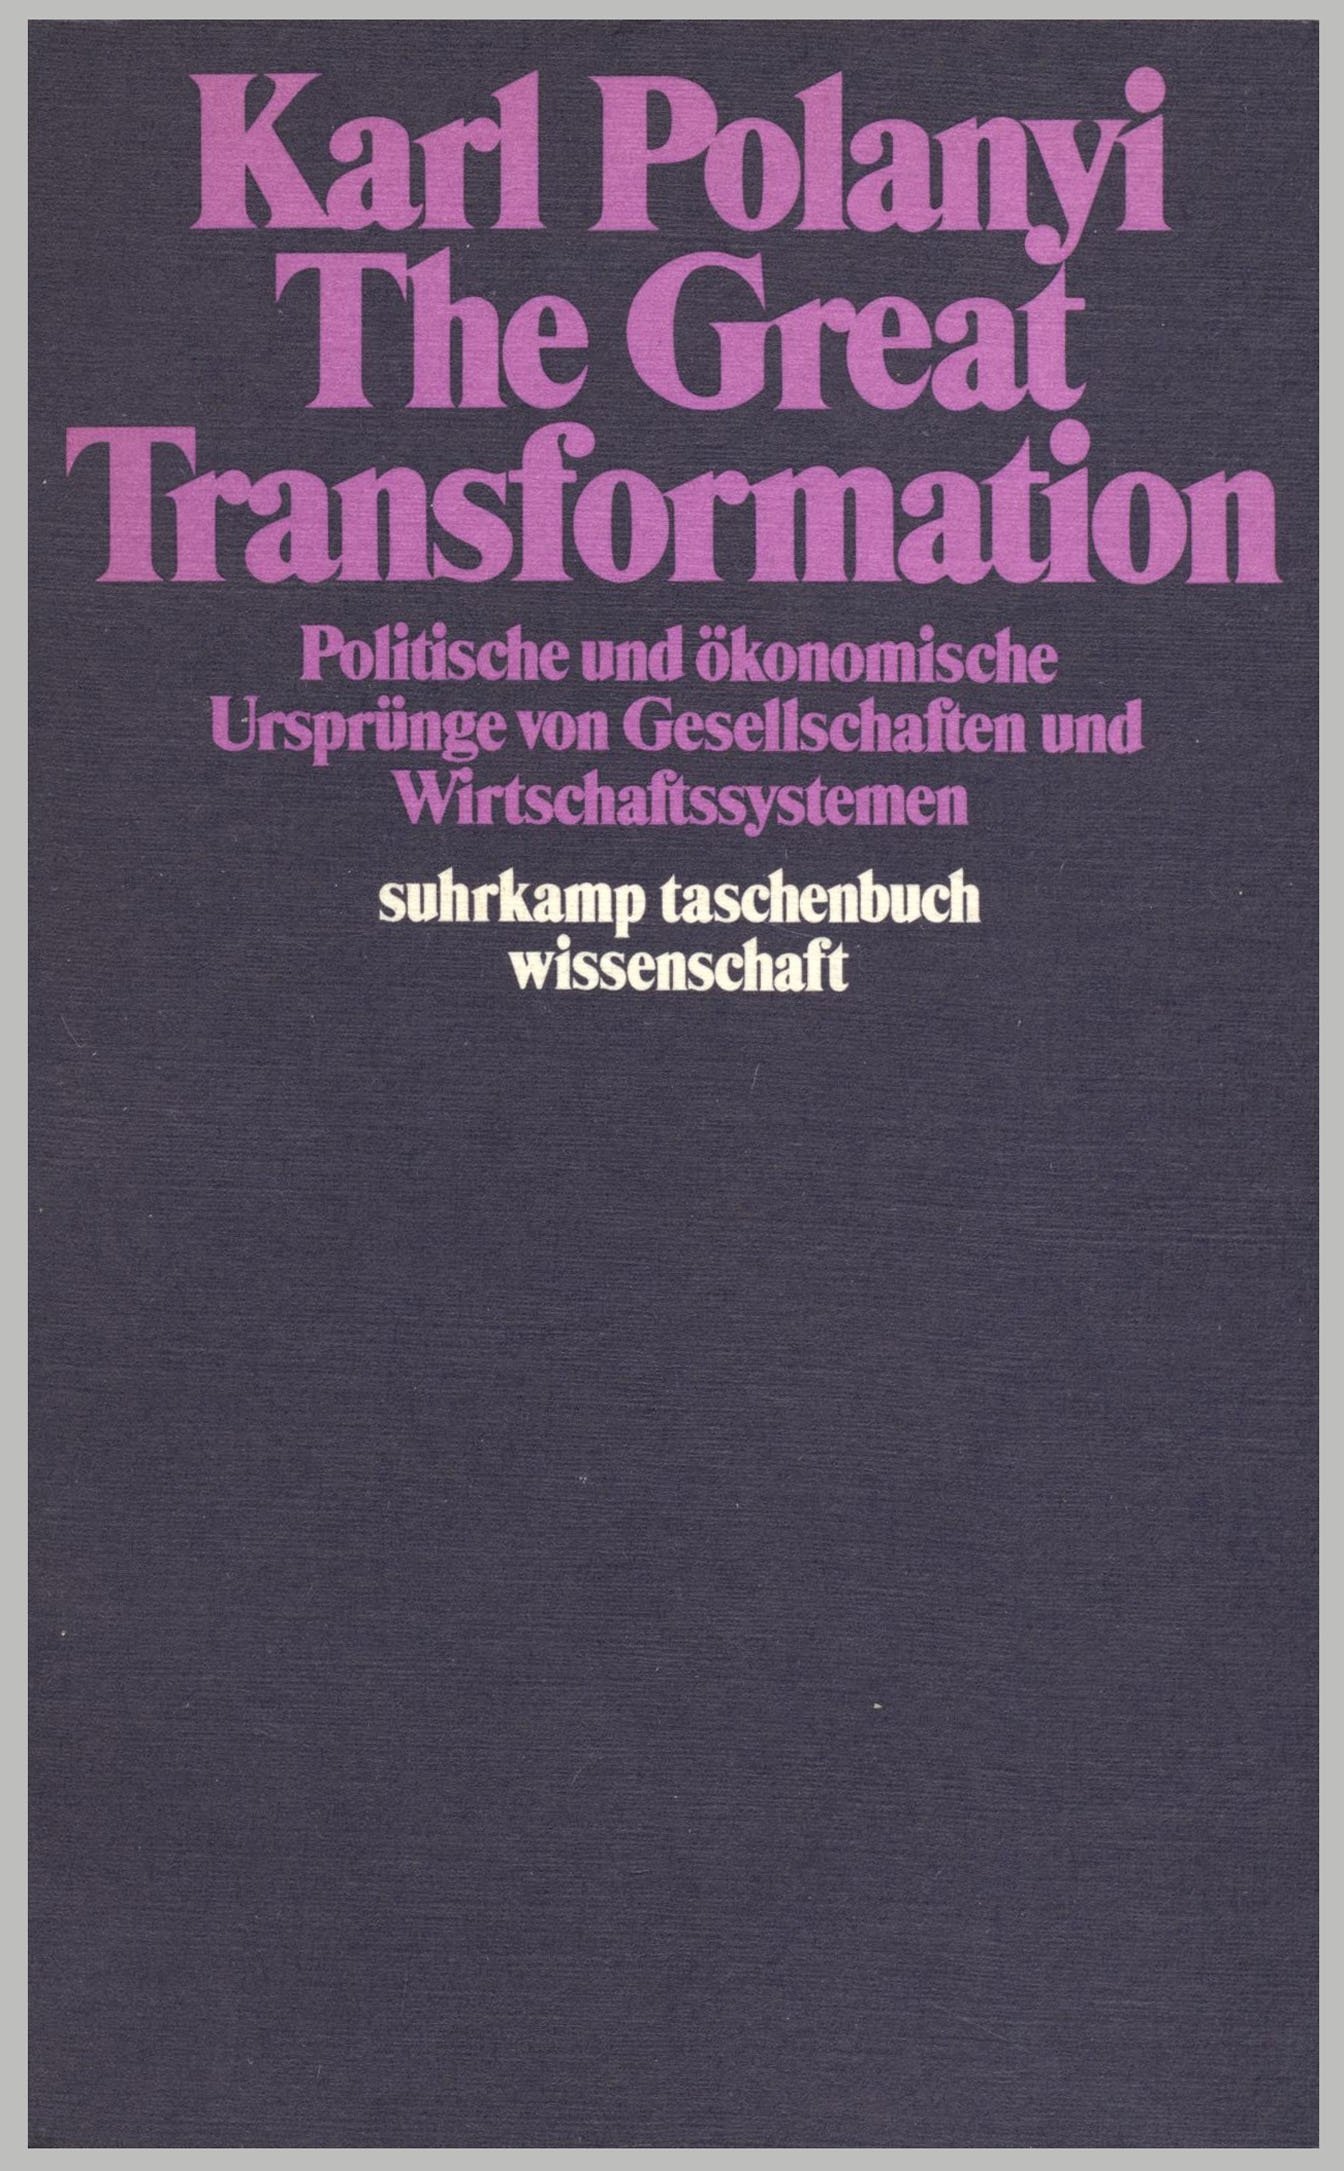 karl polanyis the great transformation essay Mihály pollacsek father of karl and michael polanyi  and modern economics: essays of karl polanyi (new york karl polanyi, the great transformation:.